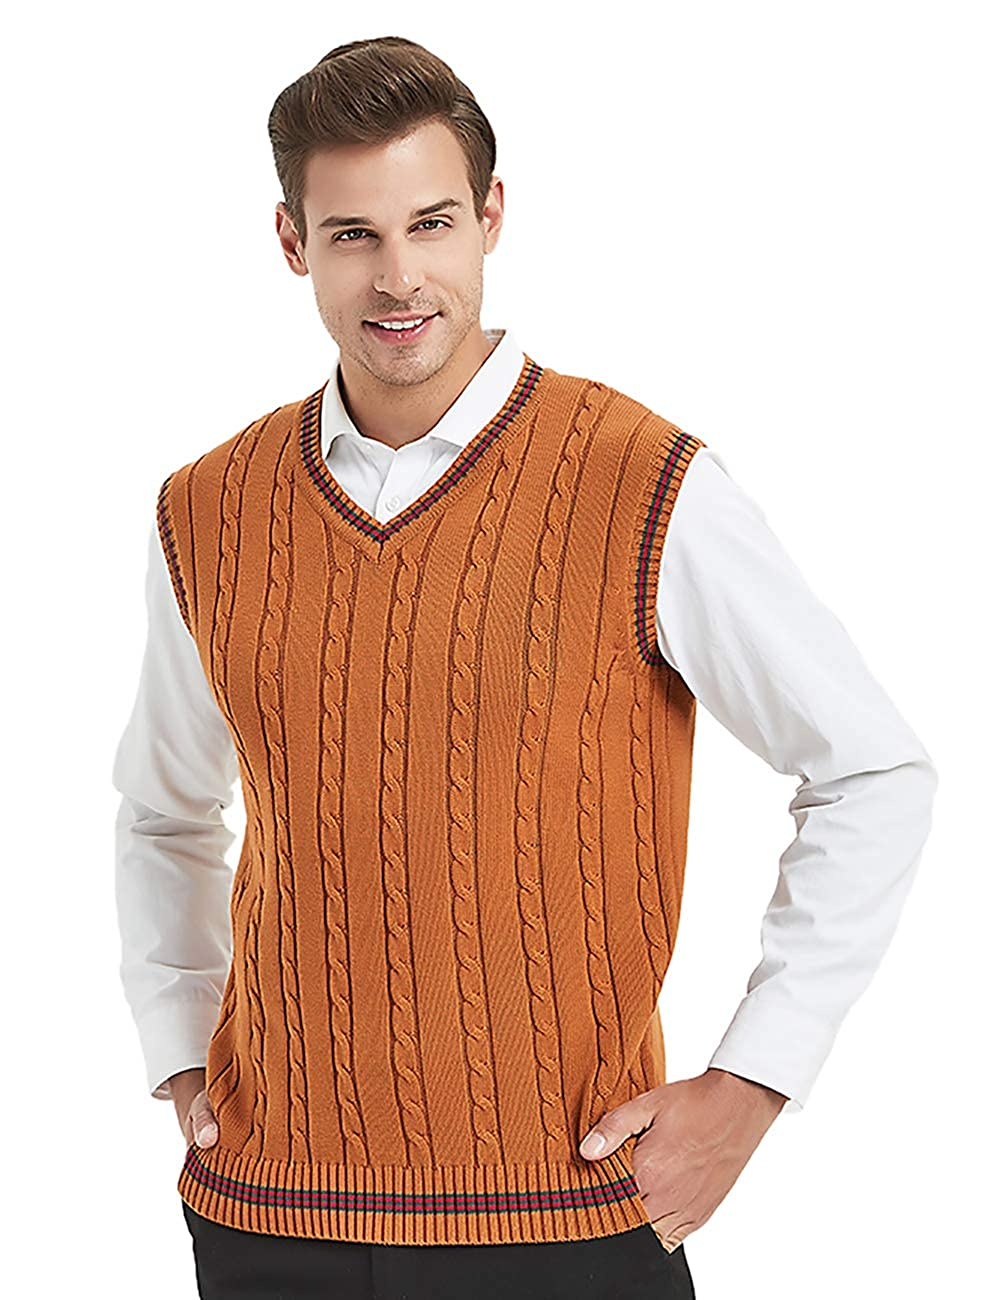 Men's Vintage Sweaters, Retro Jumpers 1920s to 1980s TOPTIE Mens V-Neck Cotton Twist Knit Sweater Vest Green and Red Trim $17.99 AT vintagedancer.com